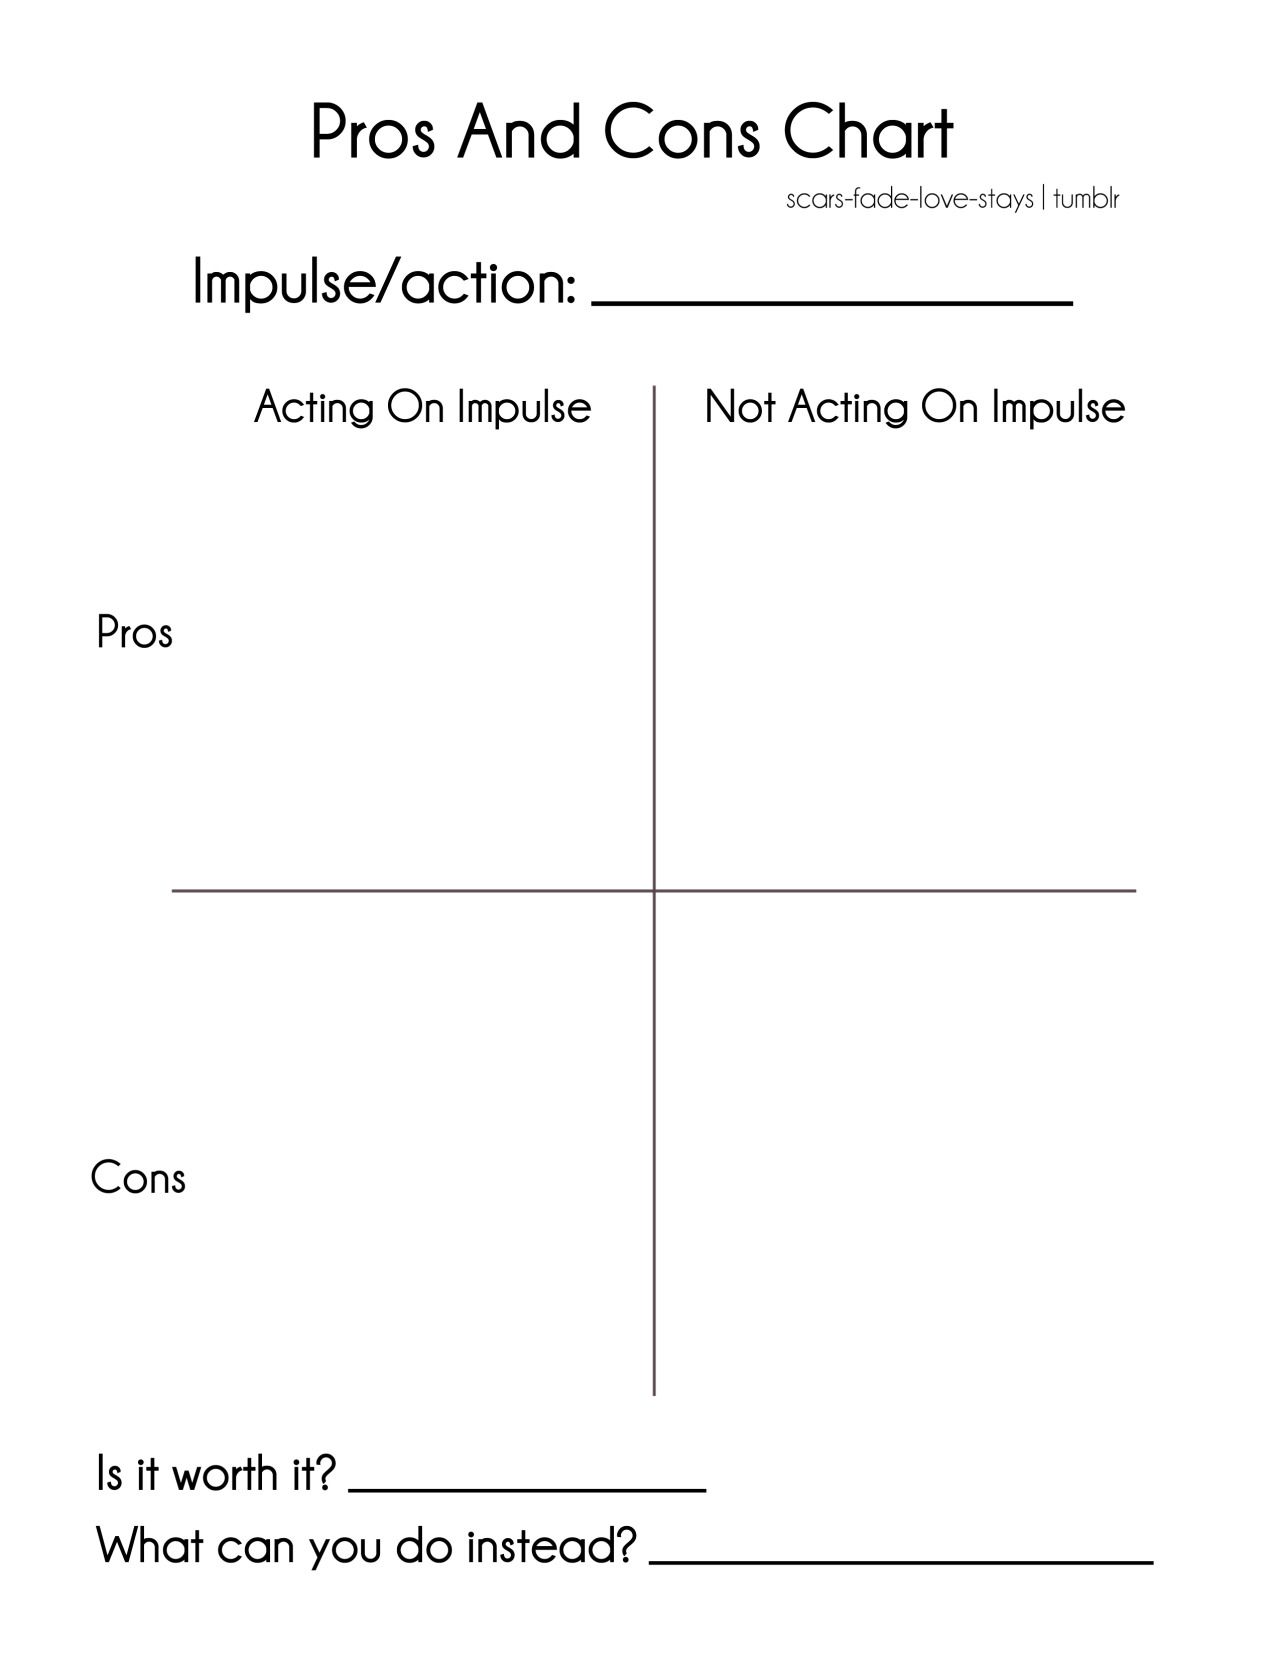 Pros And Cons Of Impulsive Actions